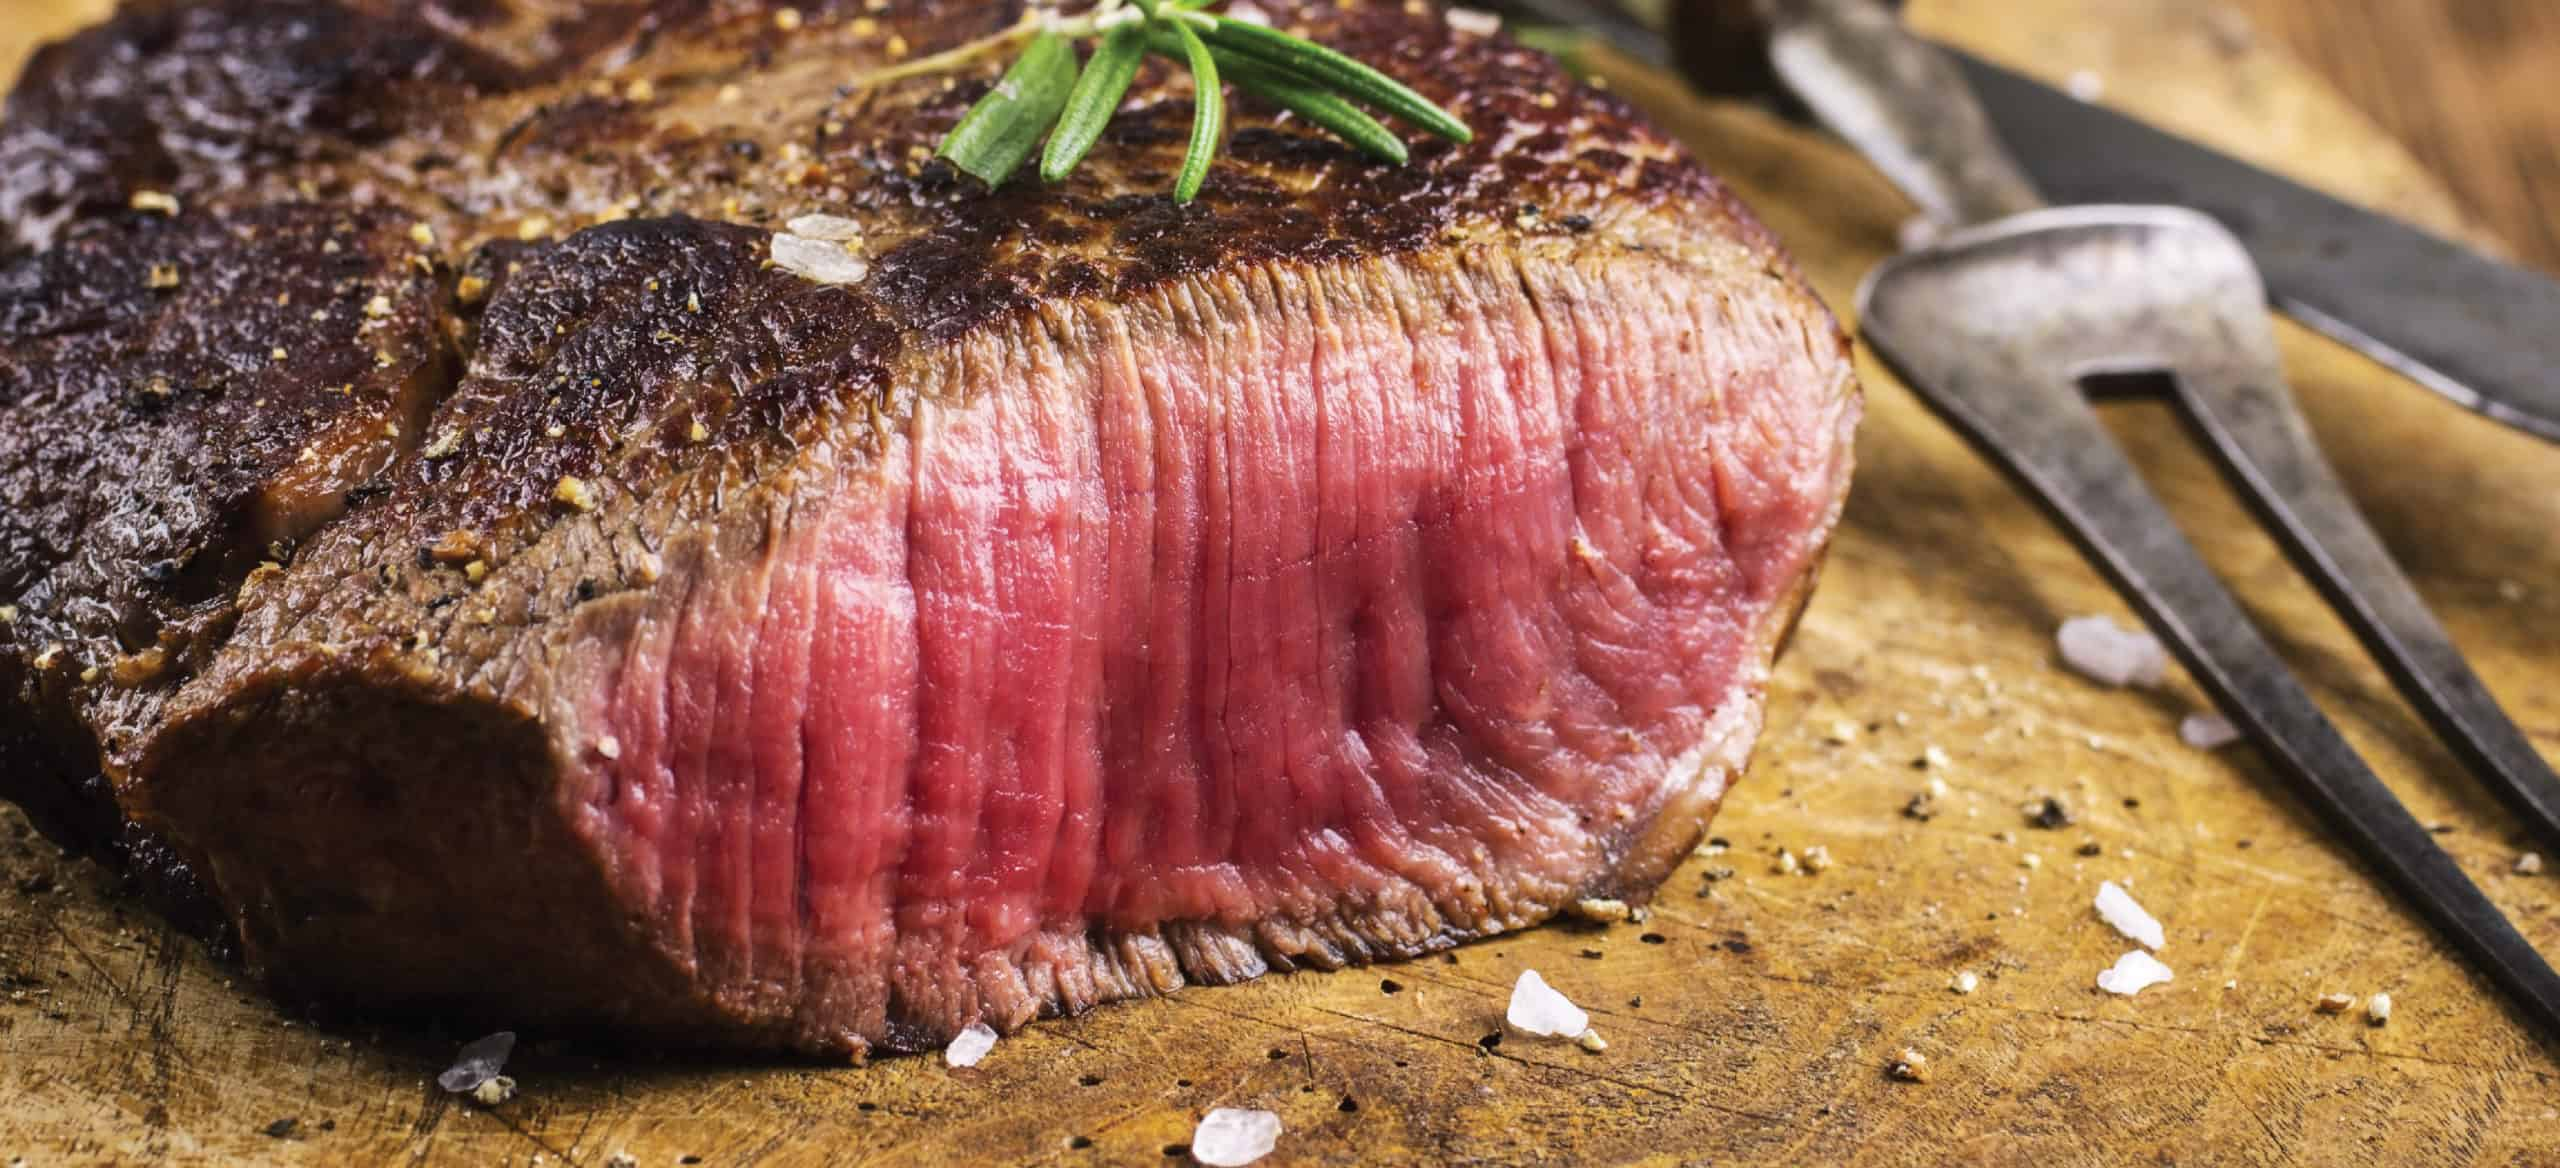 Is red meat bad for you? - MKexpress